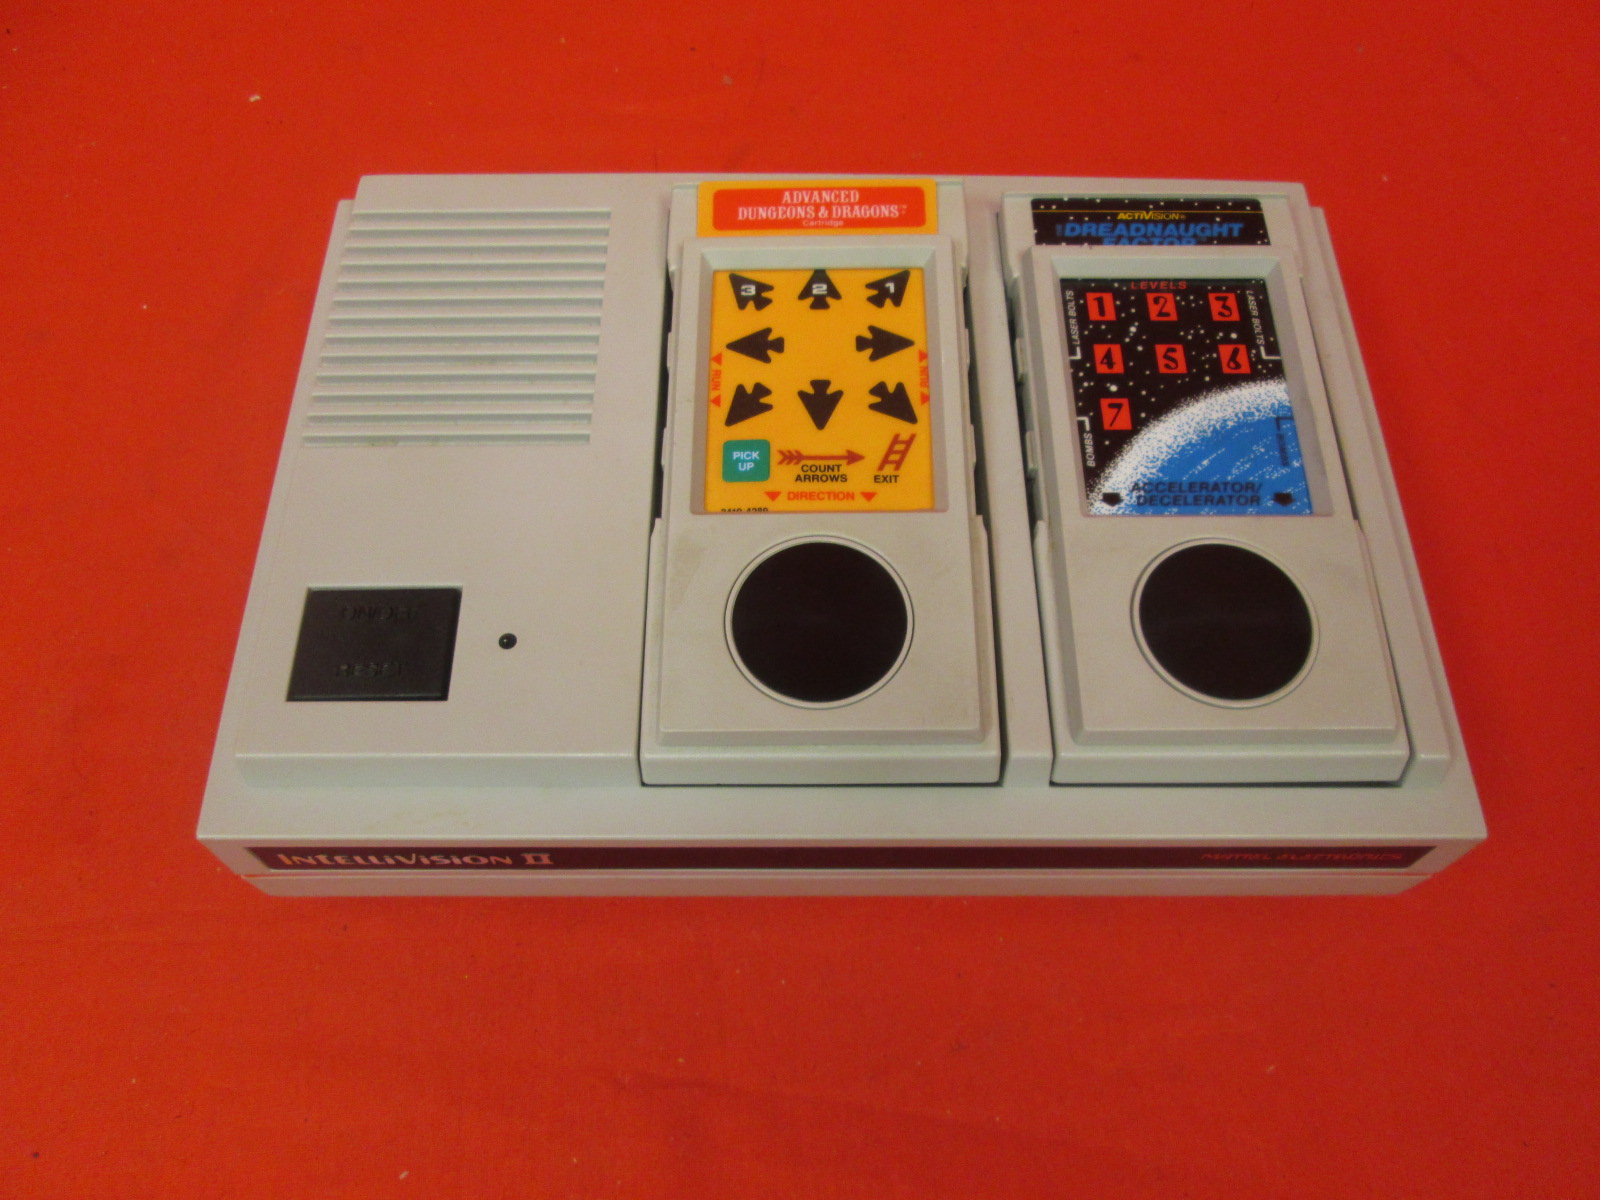 Mattell Electronics Intellivision II Model 5872 Incomplete